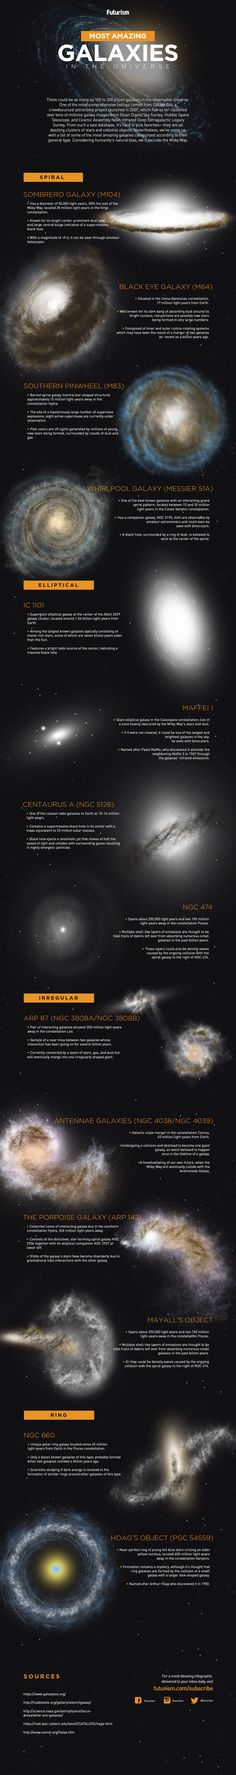 A list of some of the most amazing galaxies categorized according to their general type. Considering humanity's natural bias, we'll exclude the Milky Way.